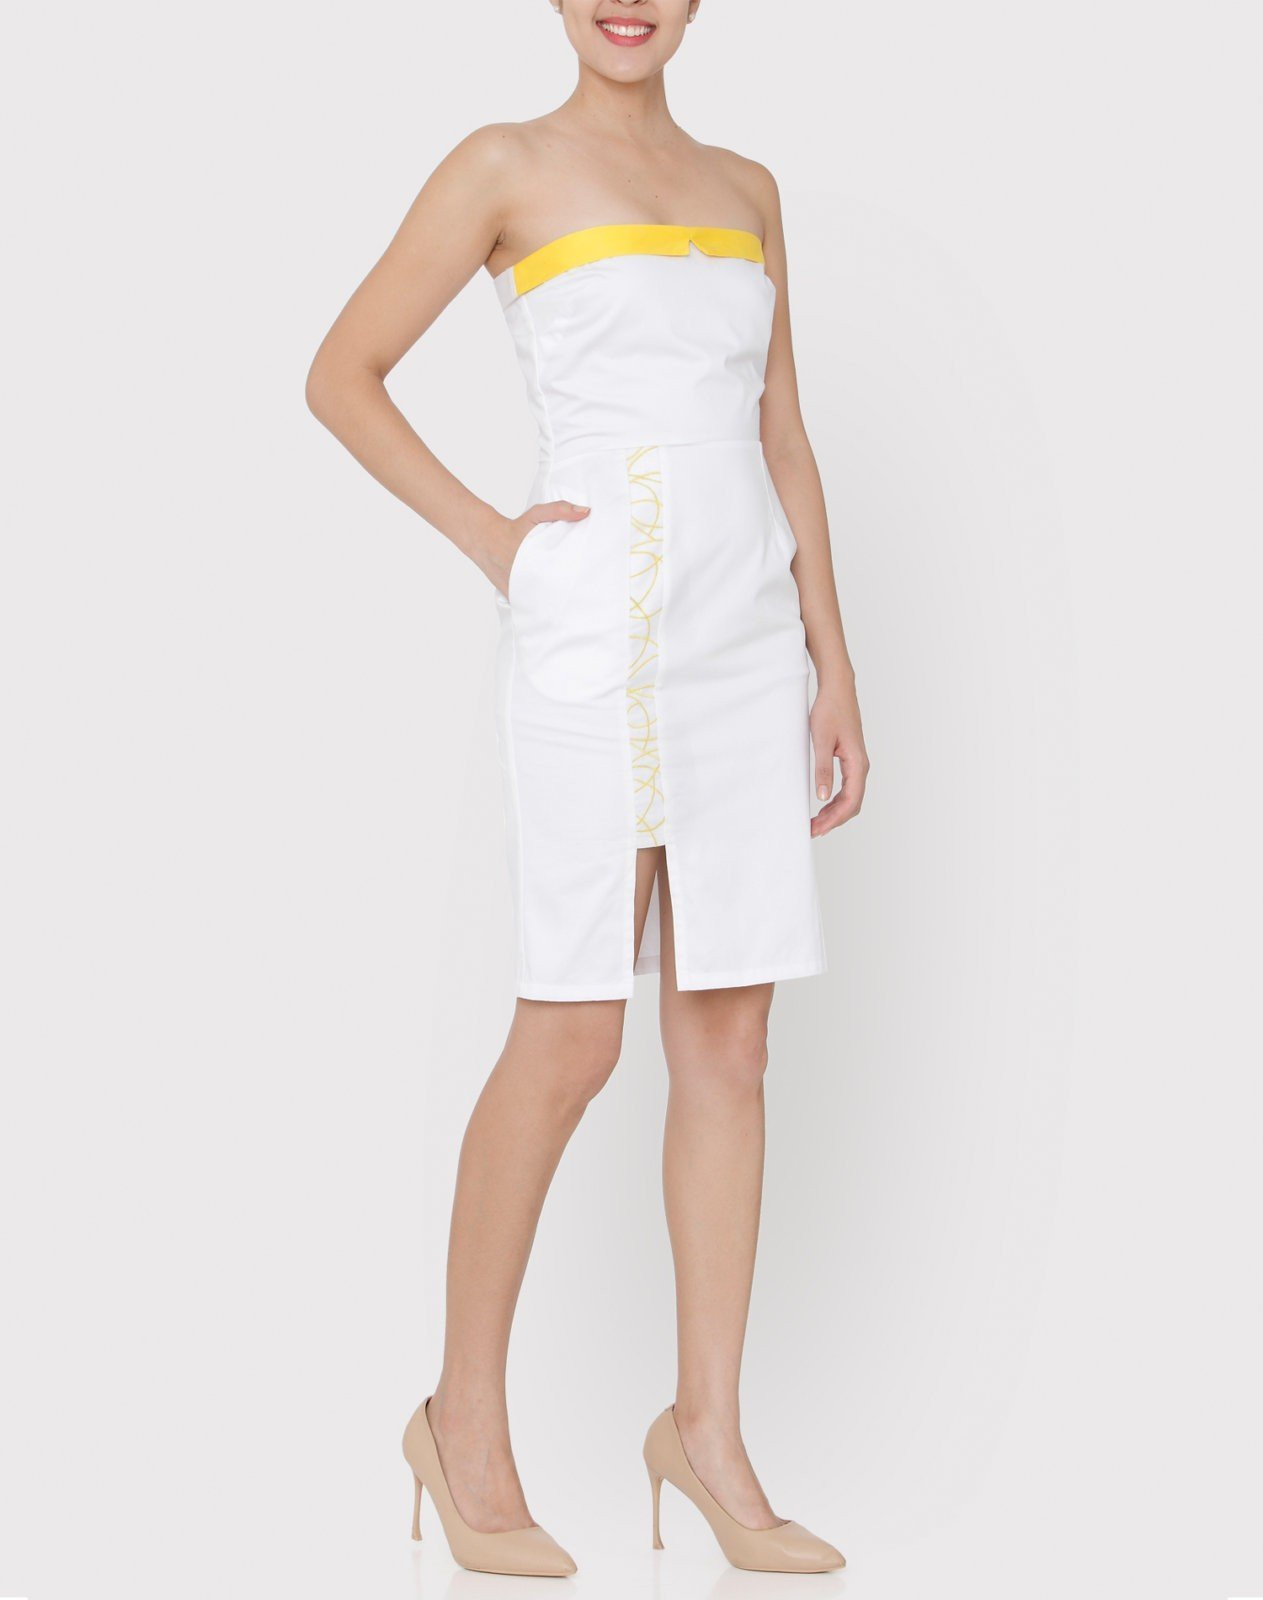 White cotton satin tube pencil dress